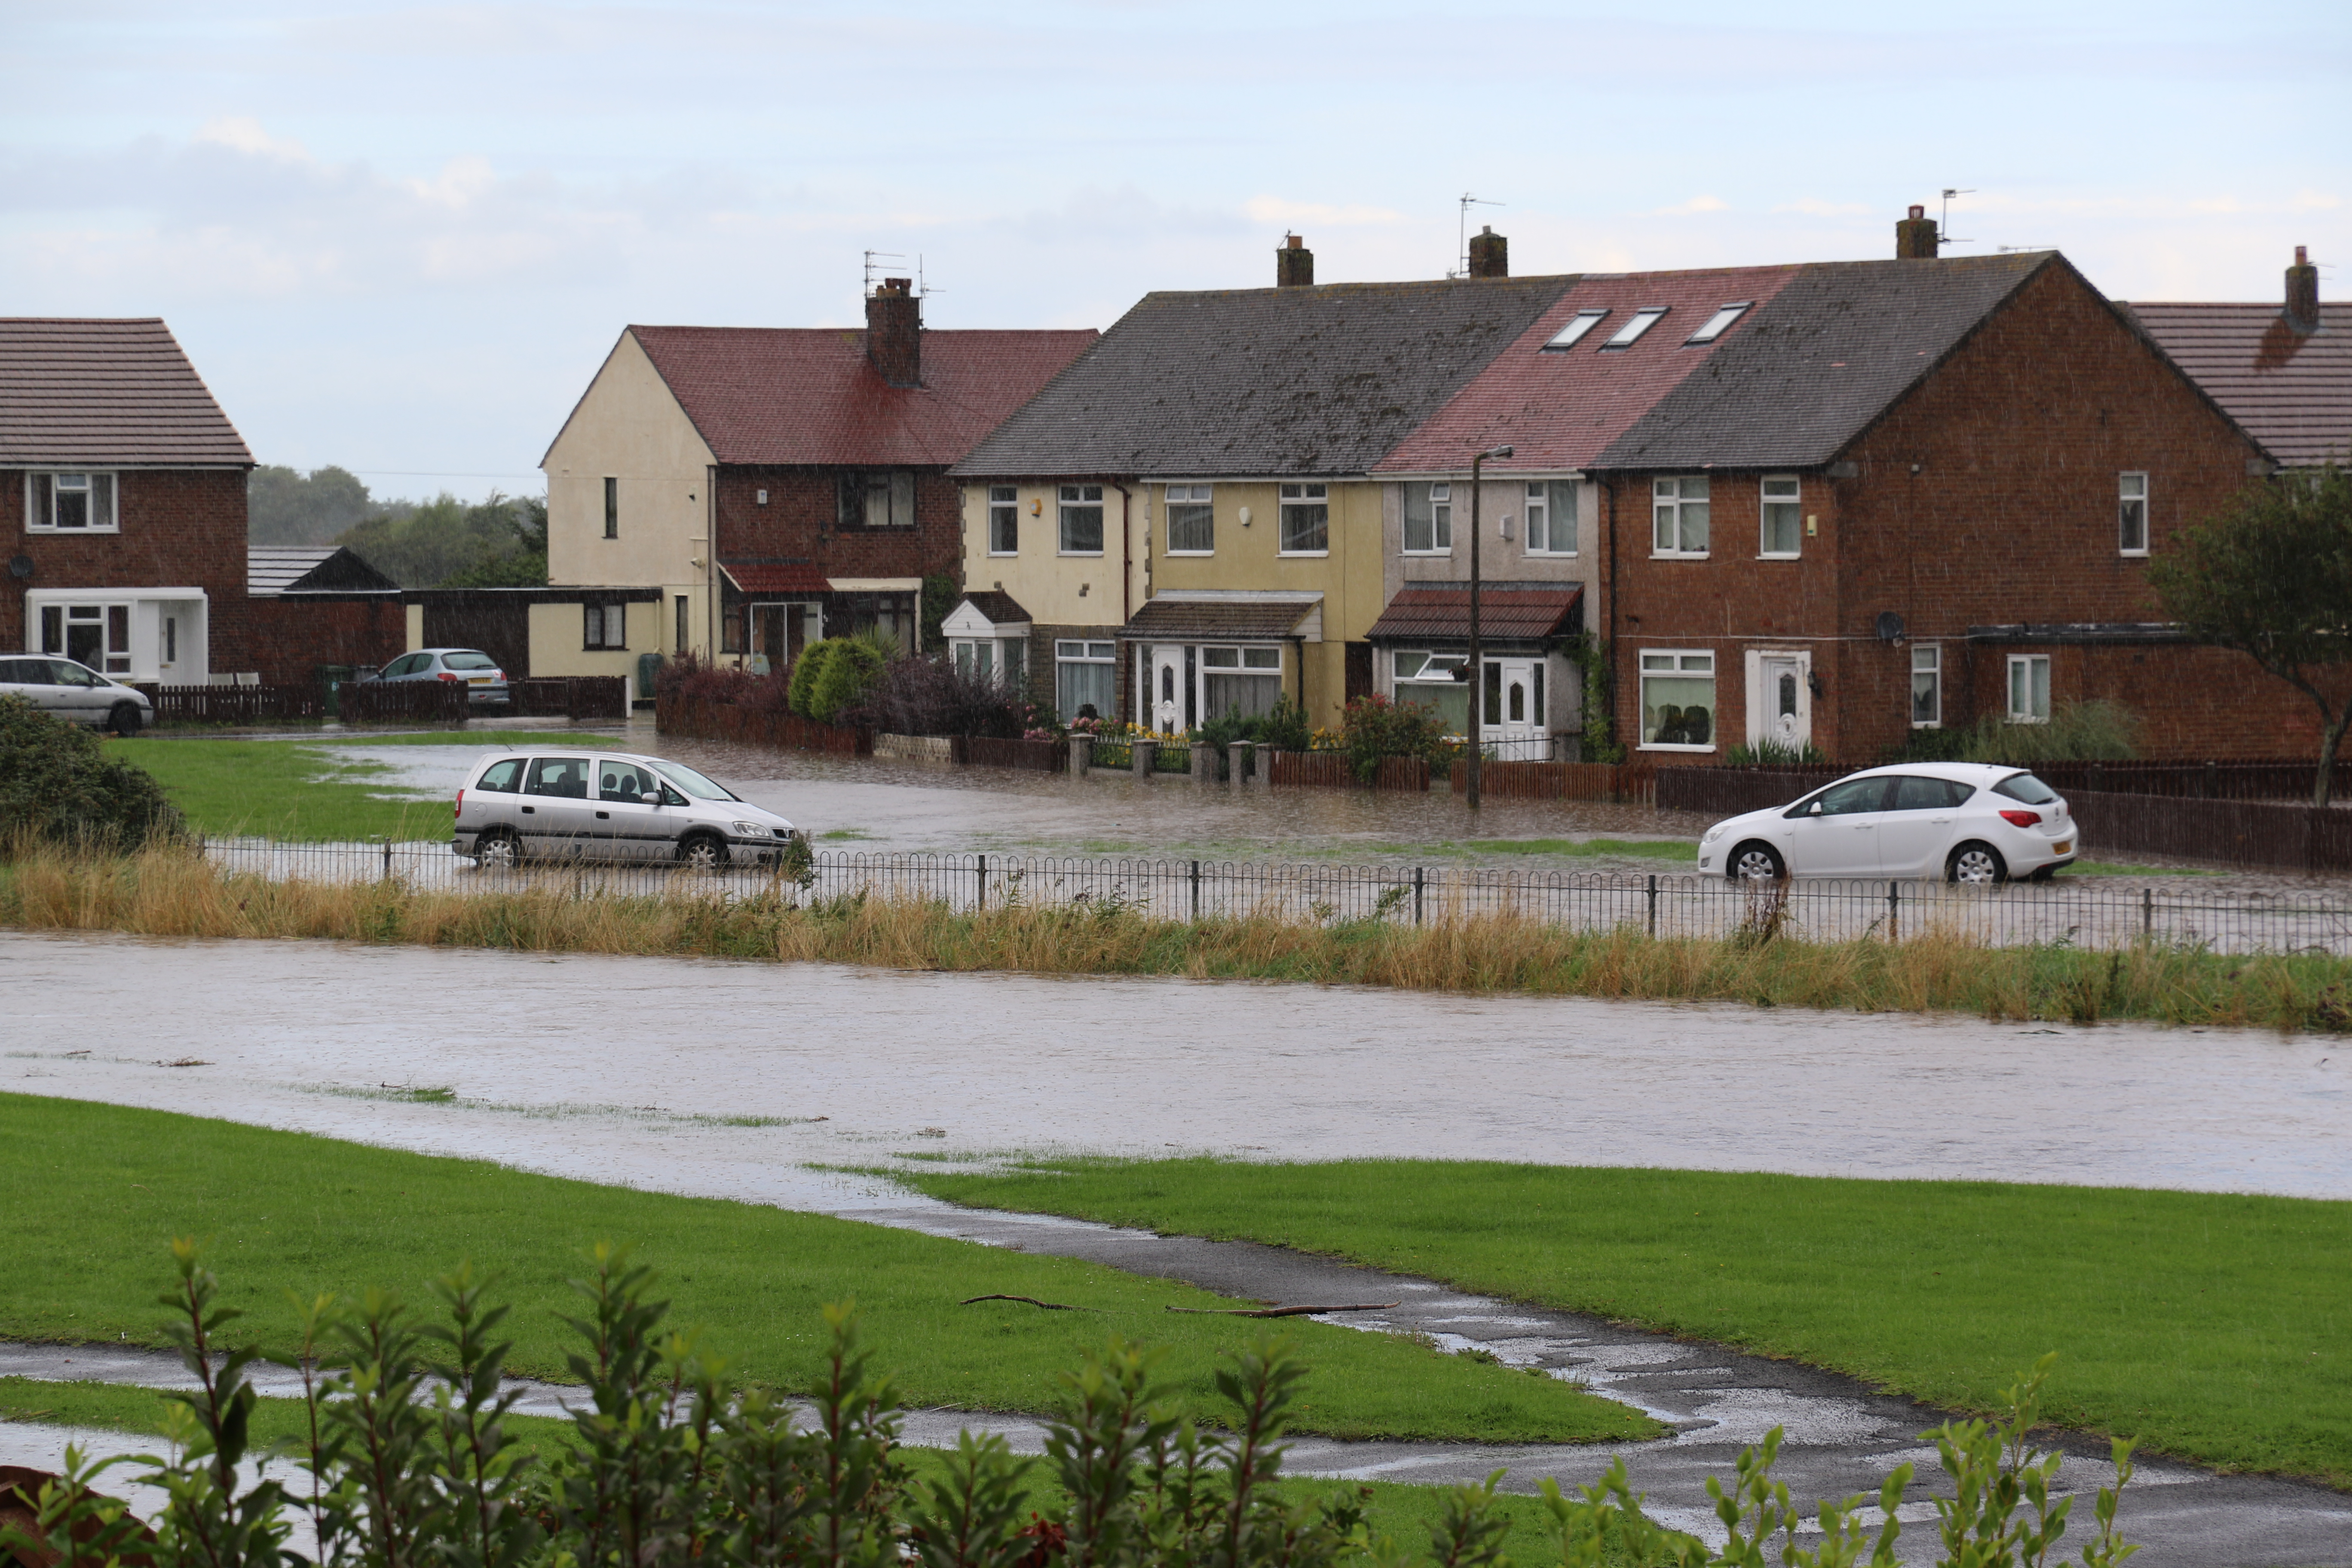 Moreton Floods - These were the houses featured on local TV